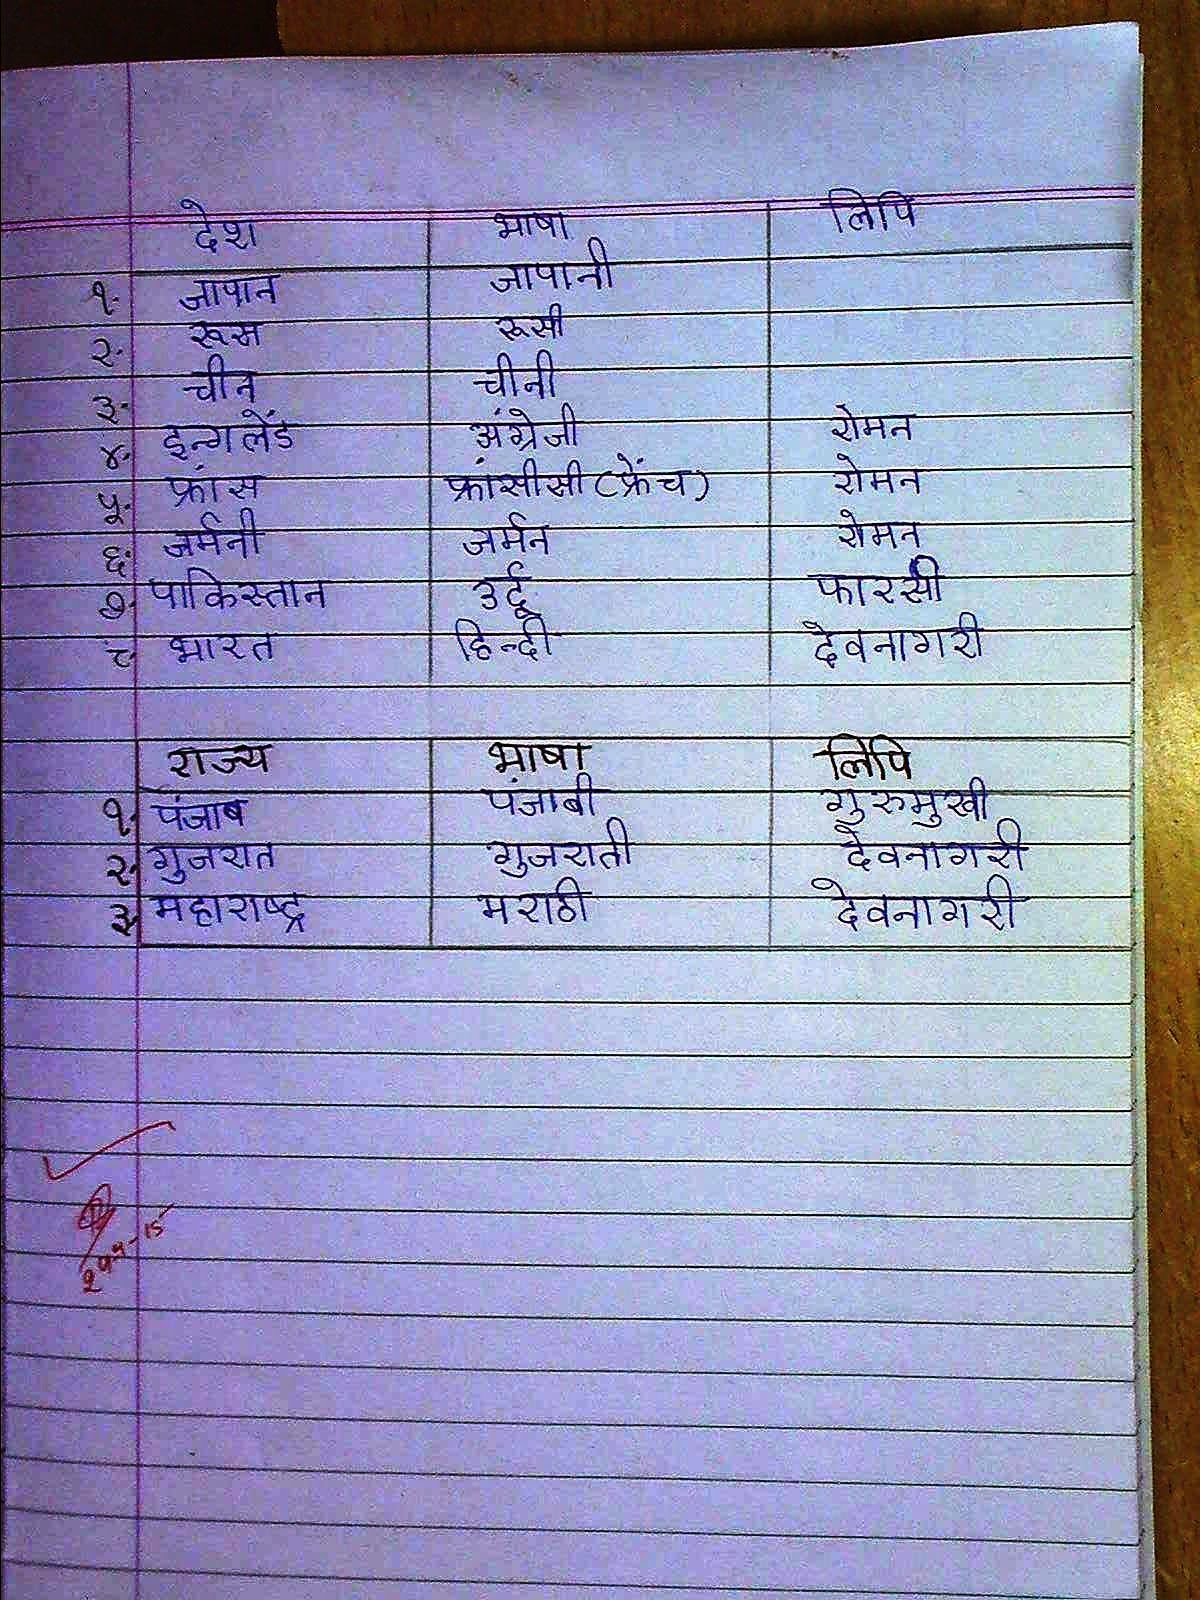 Stars of pis ahmedabad std v april 2015 posted by at 423 am no comments ccuart Image collections